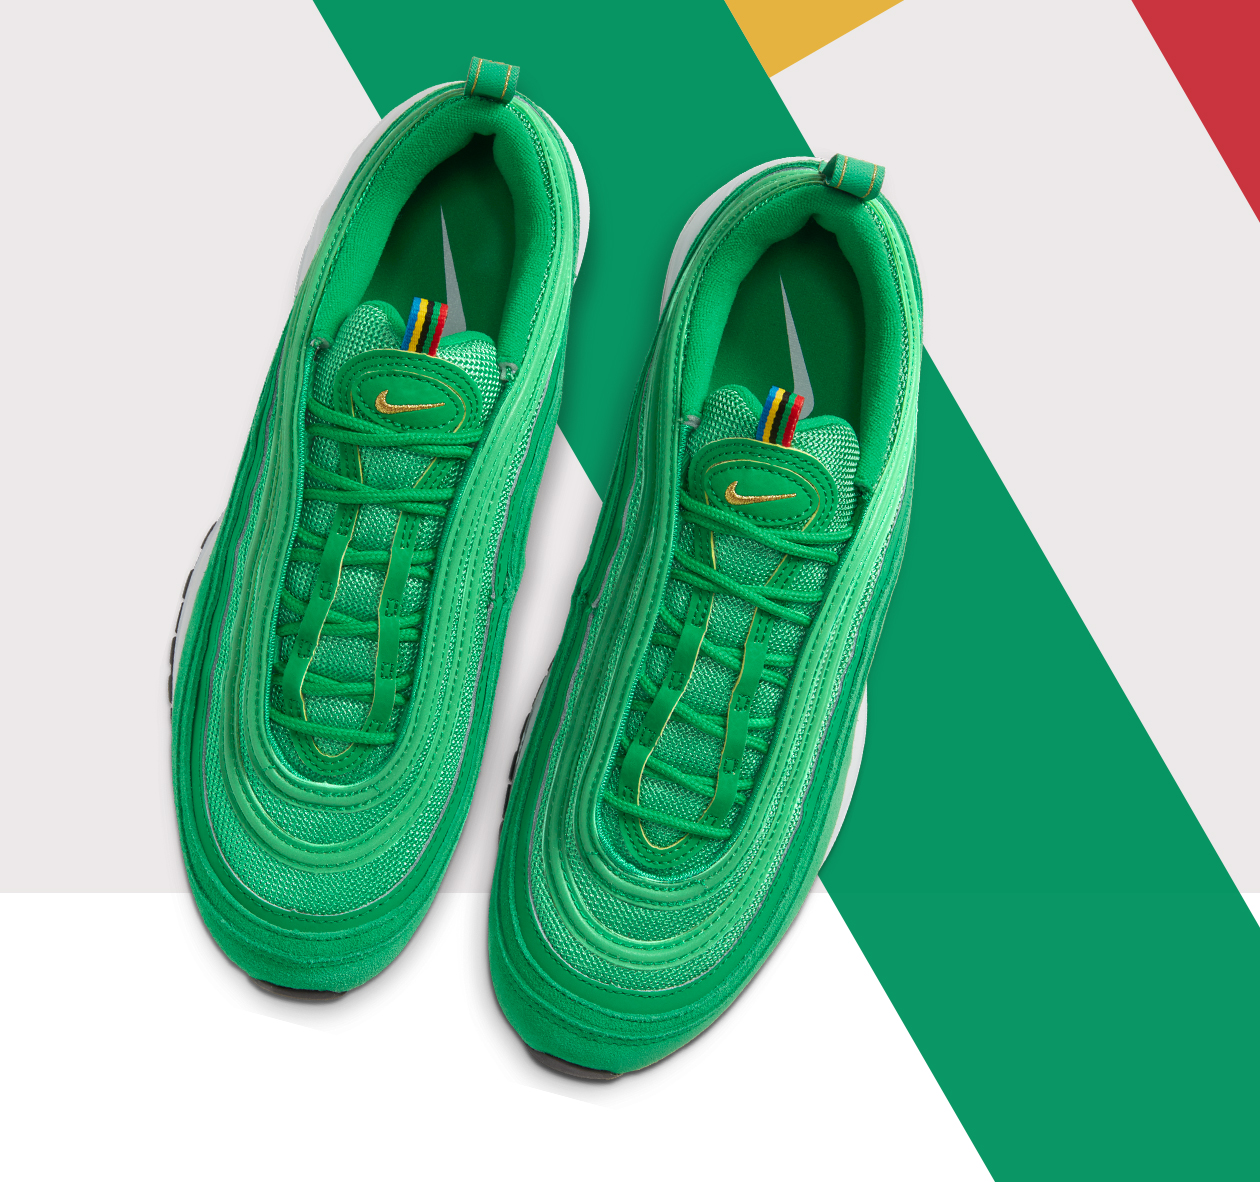 Hype Dc Nike Air Max 97 Olympic Rings Pack Out Now Milled